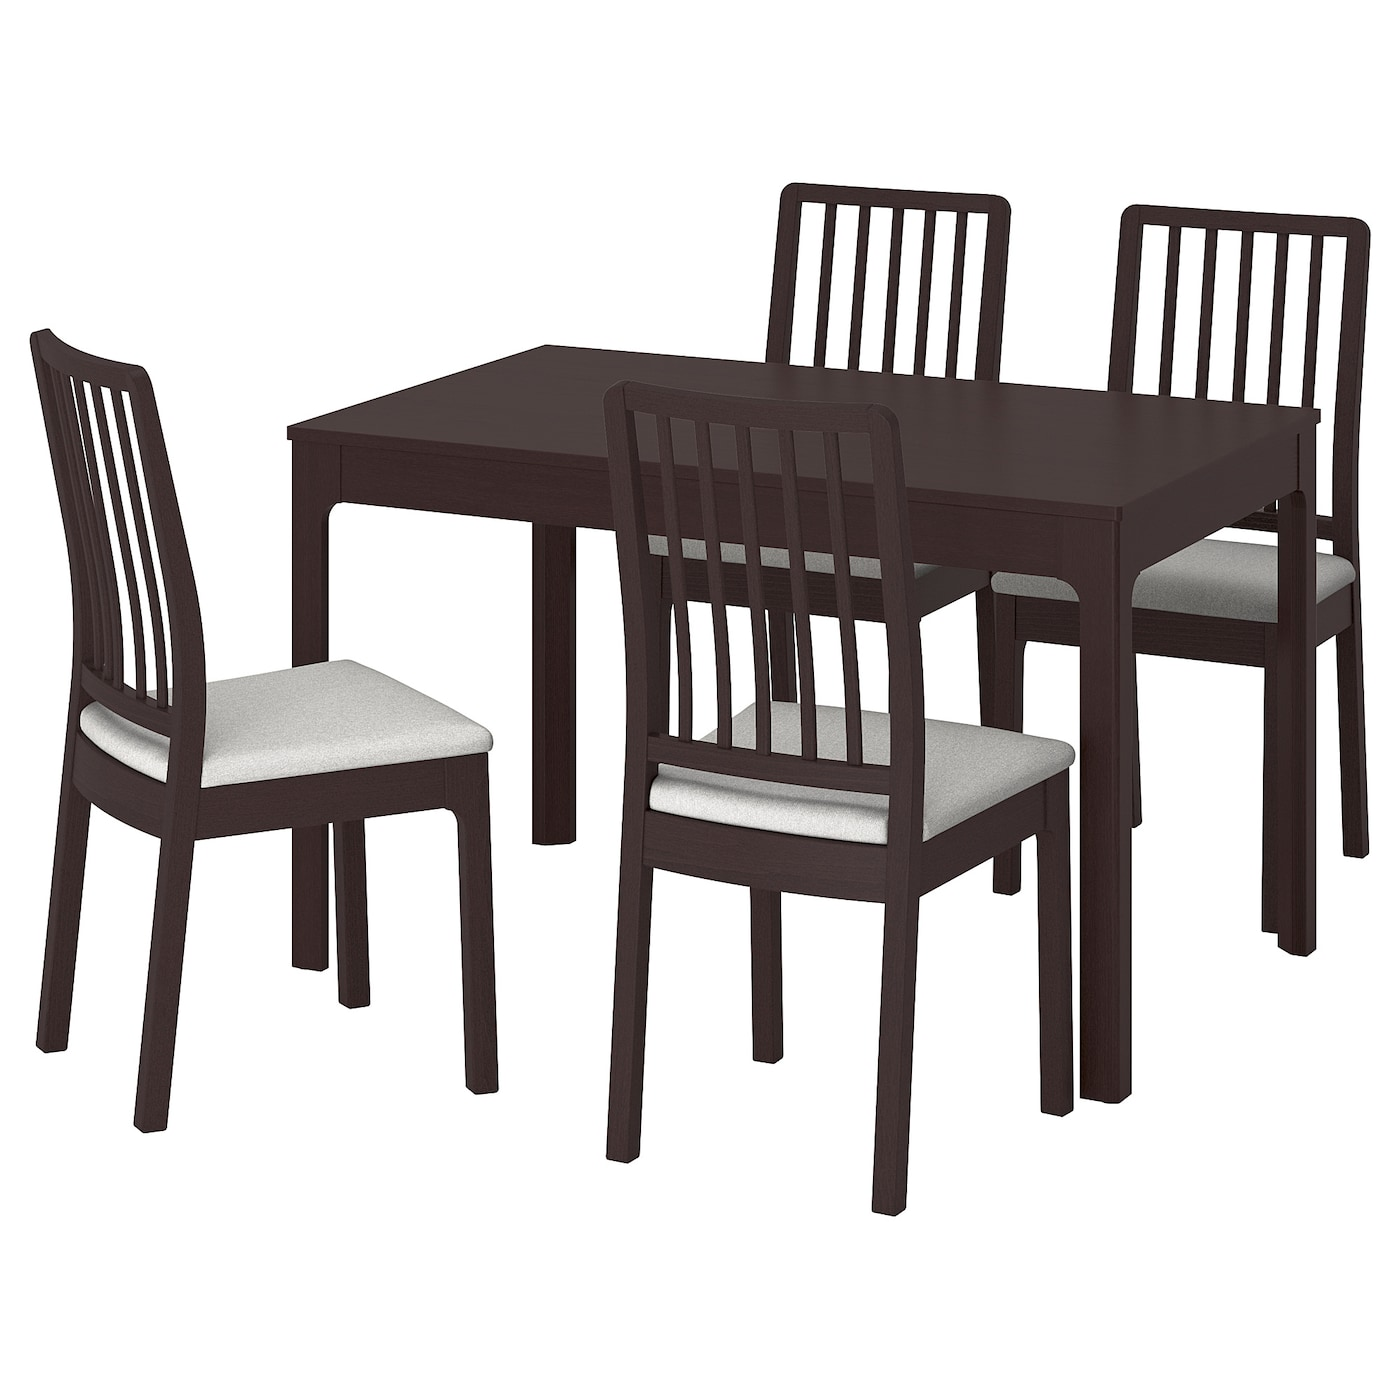 Ikea Ekedalen Ekedalen Table And 4 Chairs